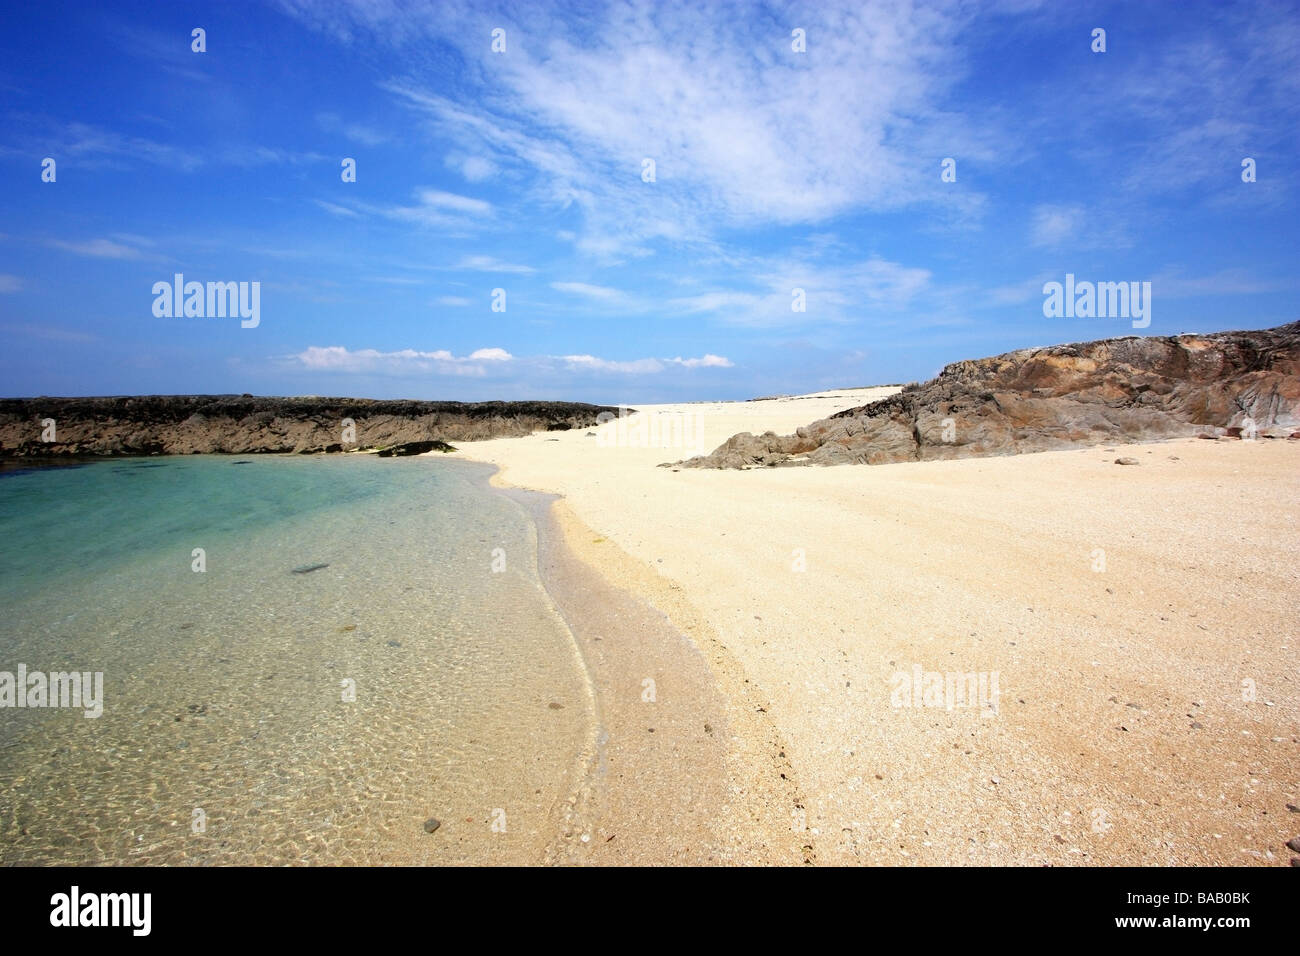 Carrowroe Coral Beach, Co Galway, Ireland; Beach and clear water - Stock Image